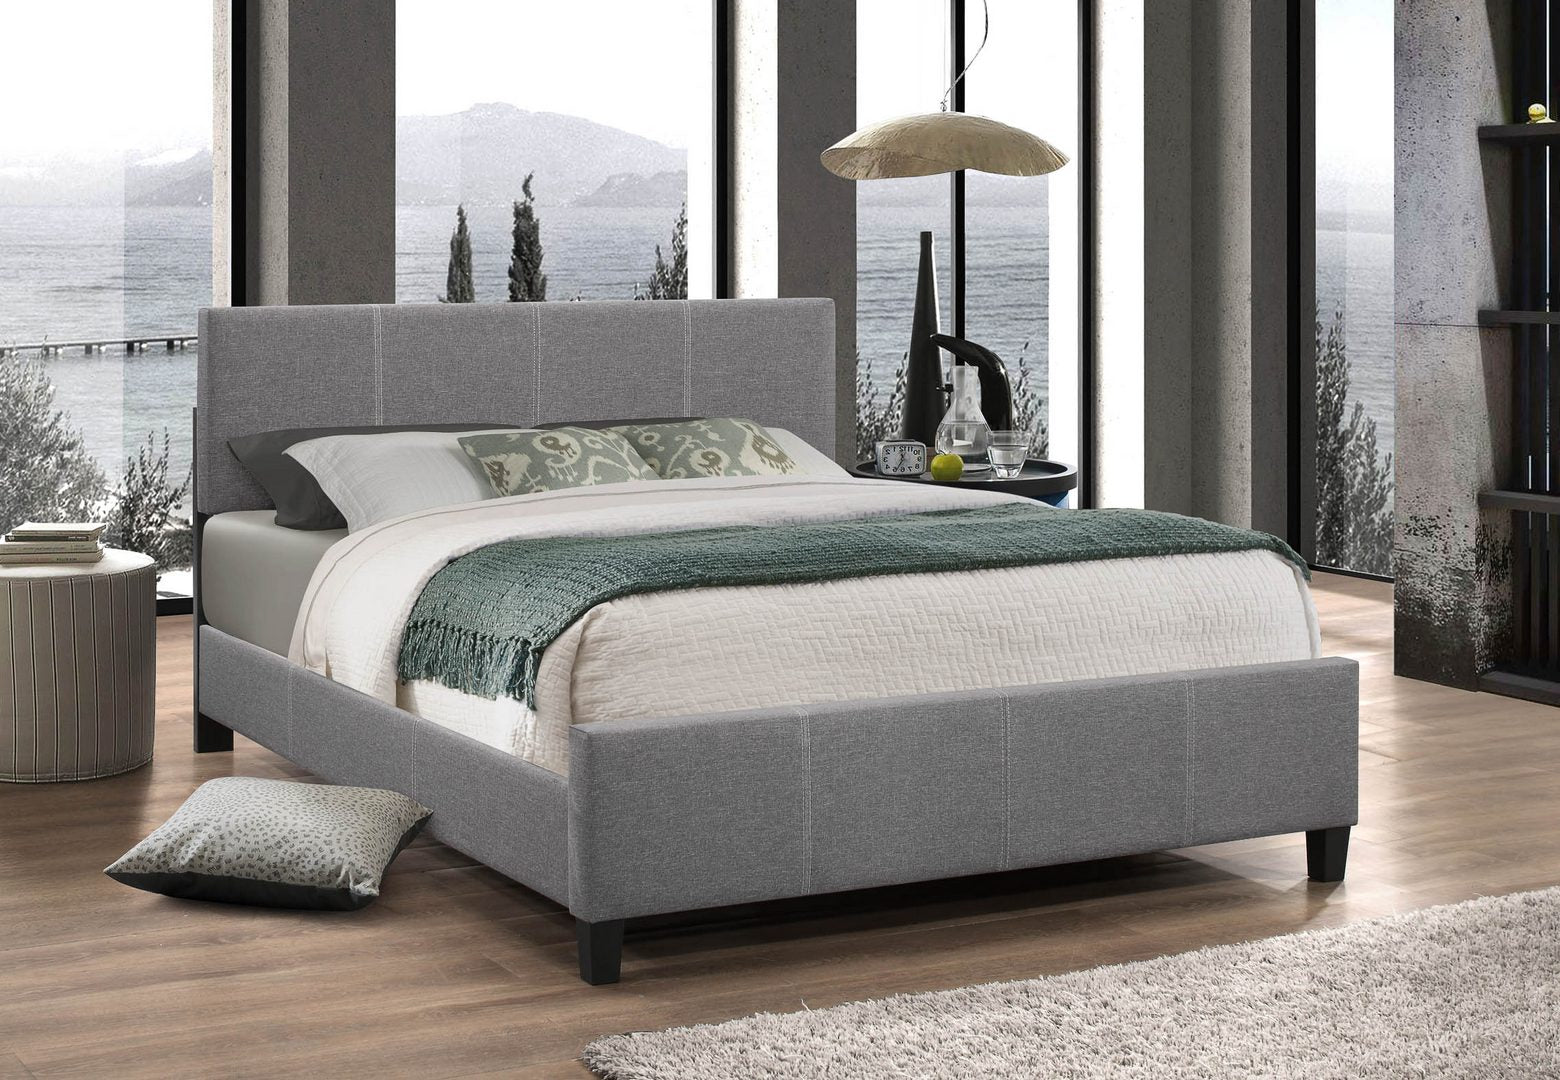 137 Light Grey Fabric Bed With Contrast Stitching